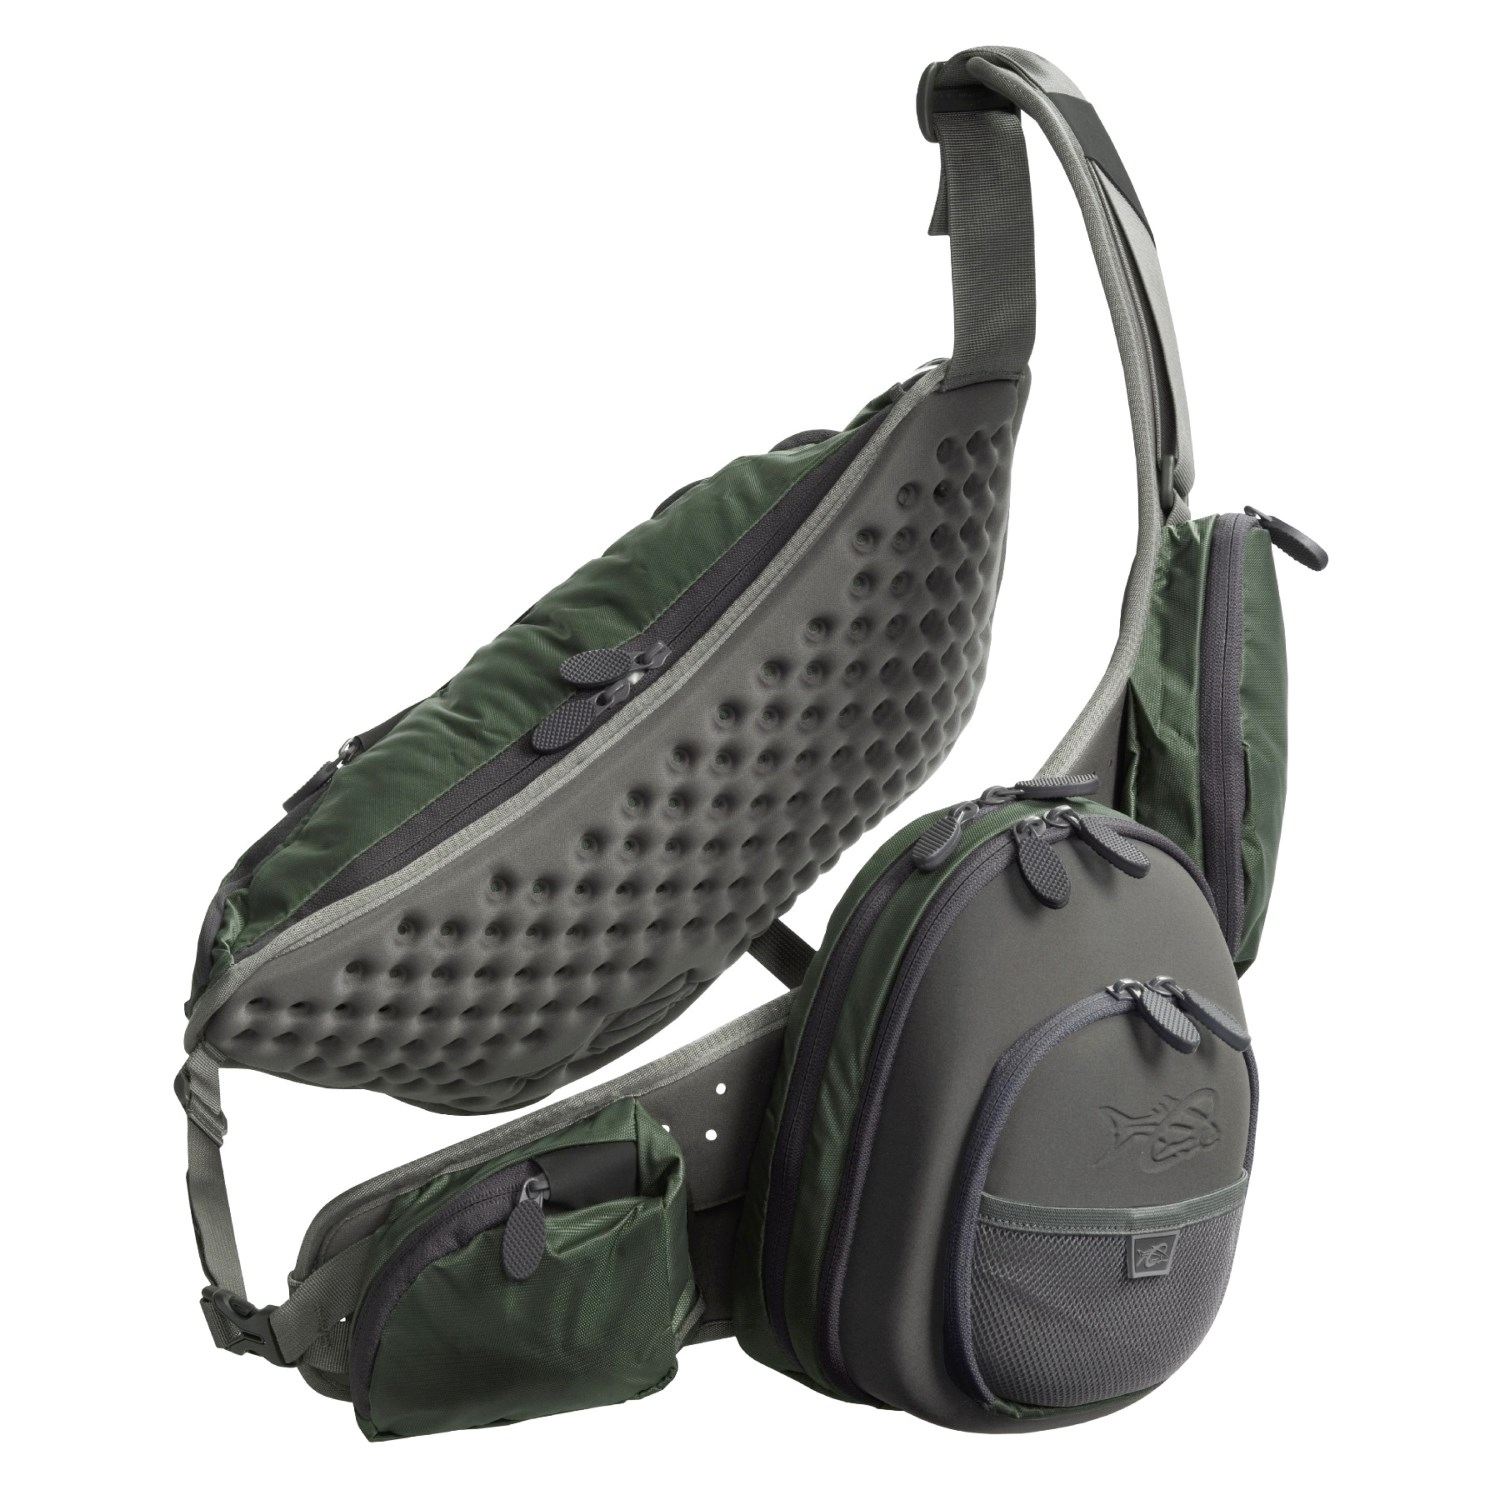 William joseph equinox fly fishing sling pack 1505f save 32 for Fishing sling pack